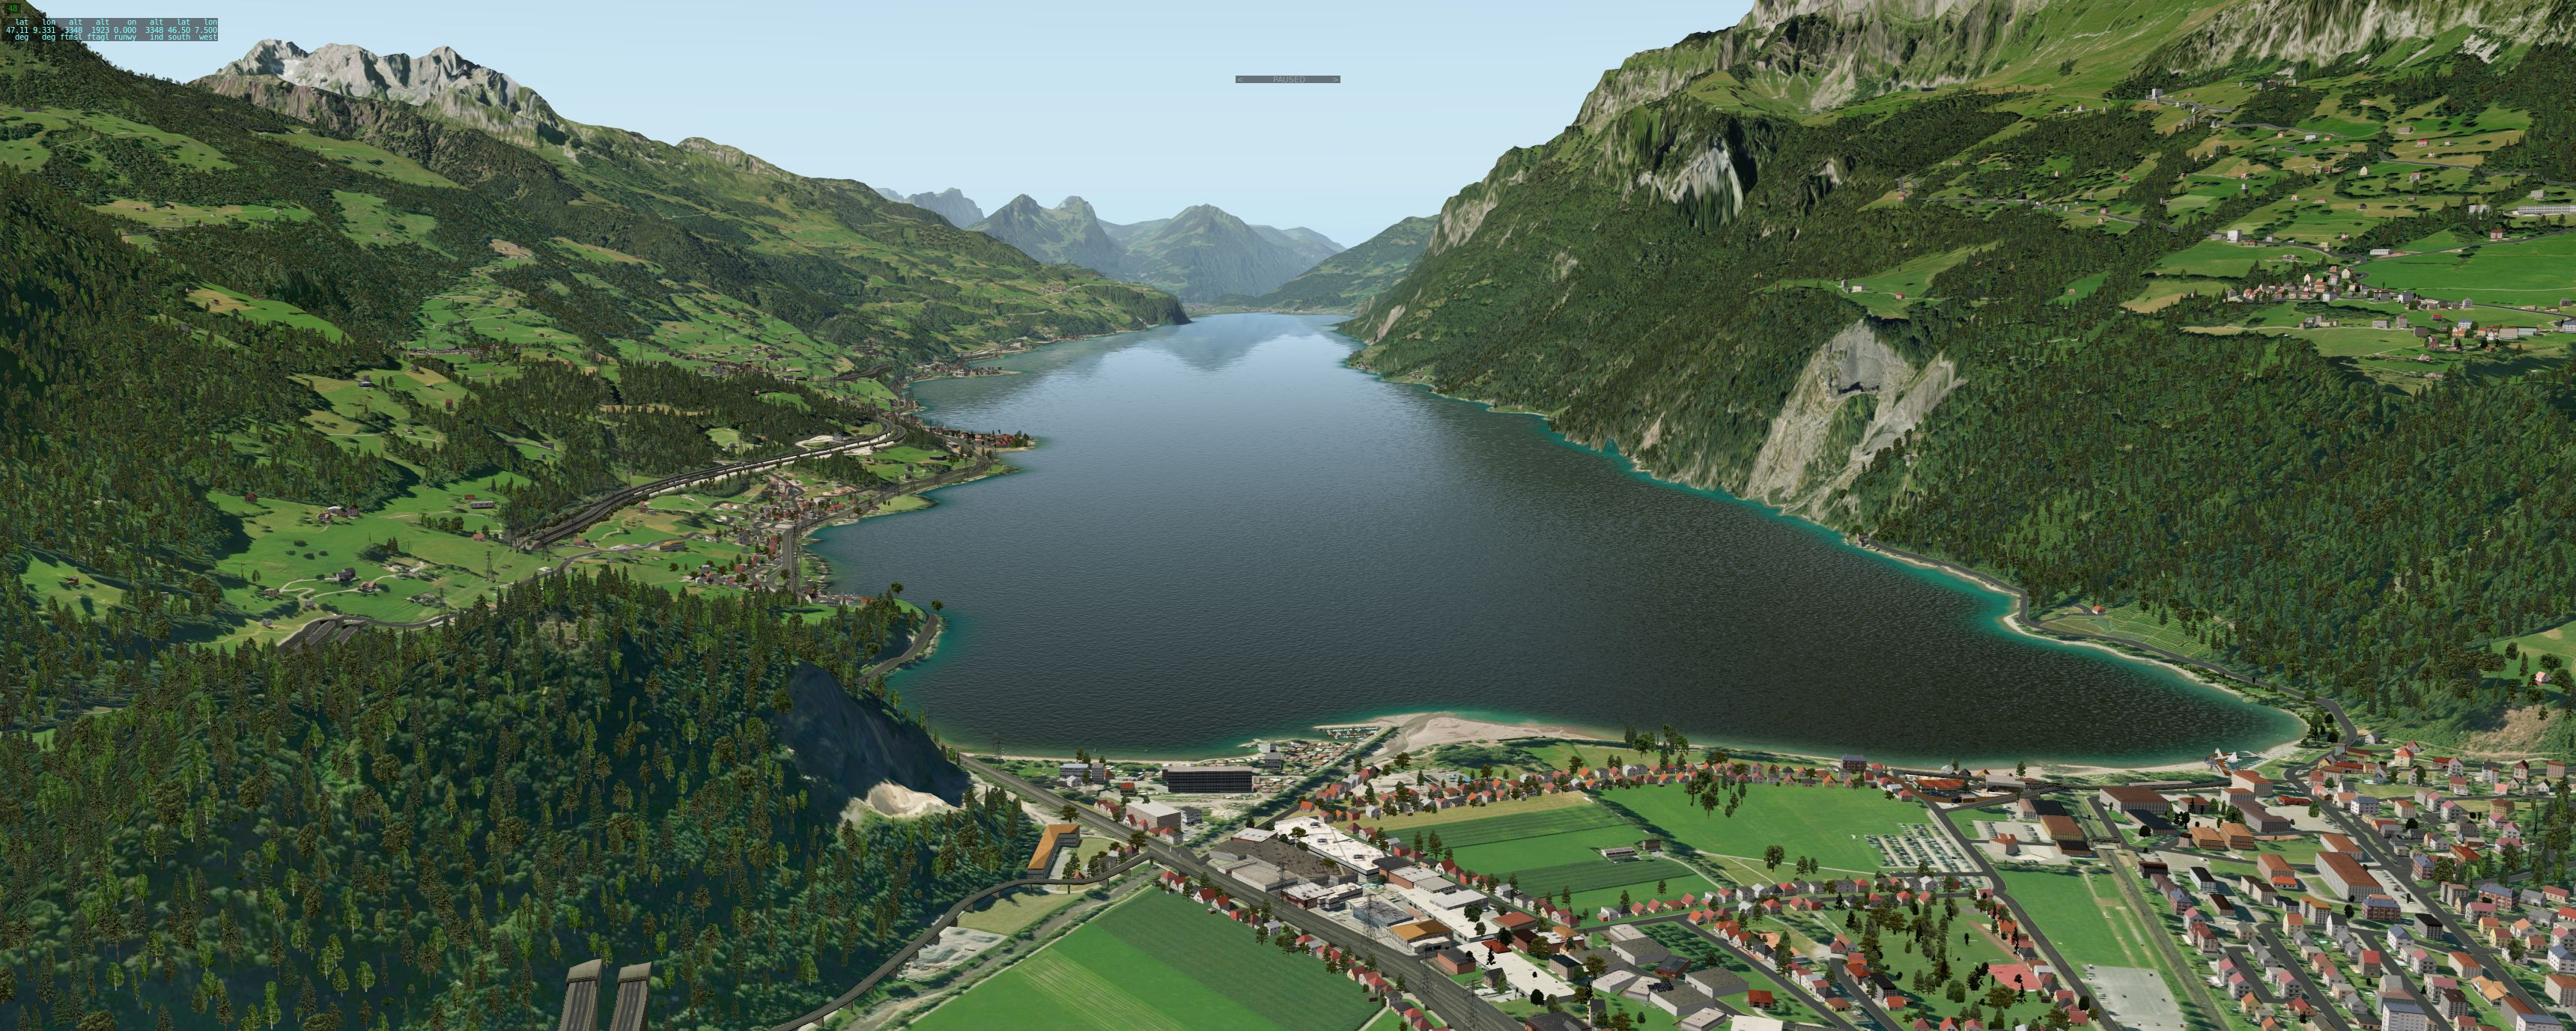 simheaven ch walensee